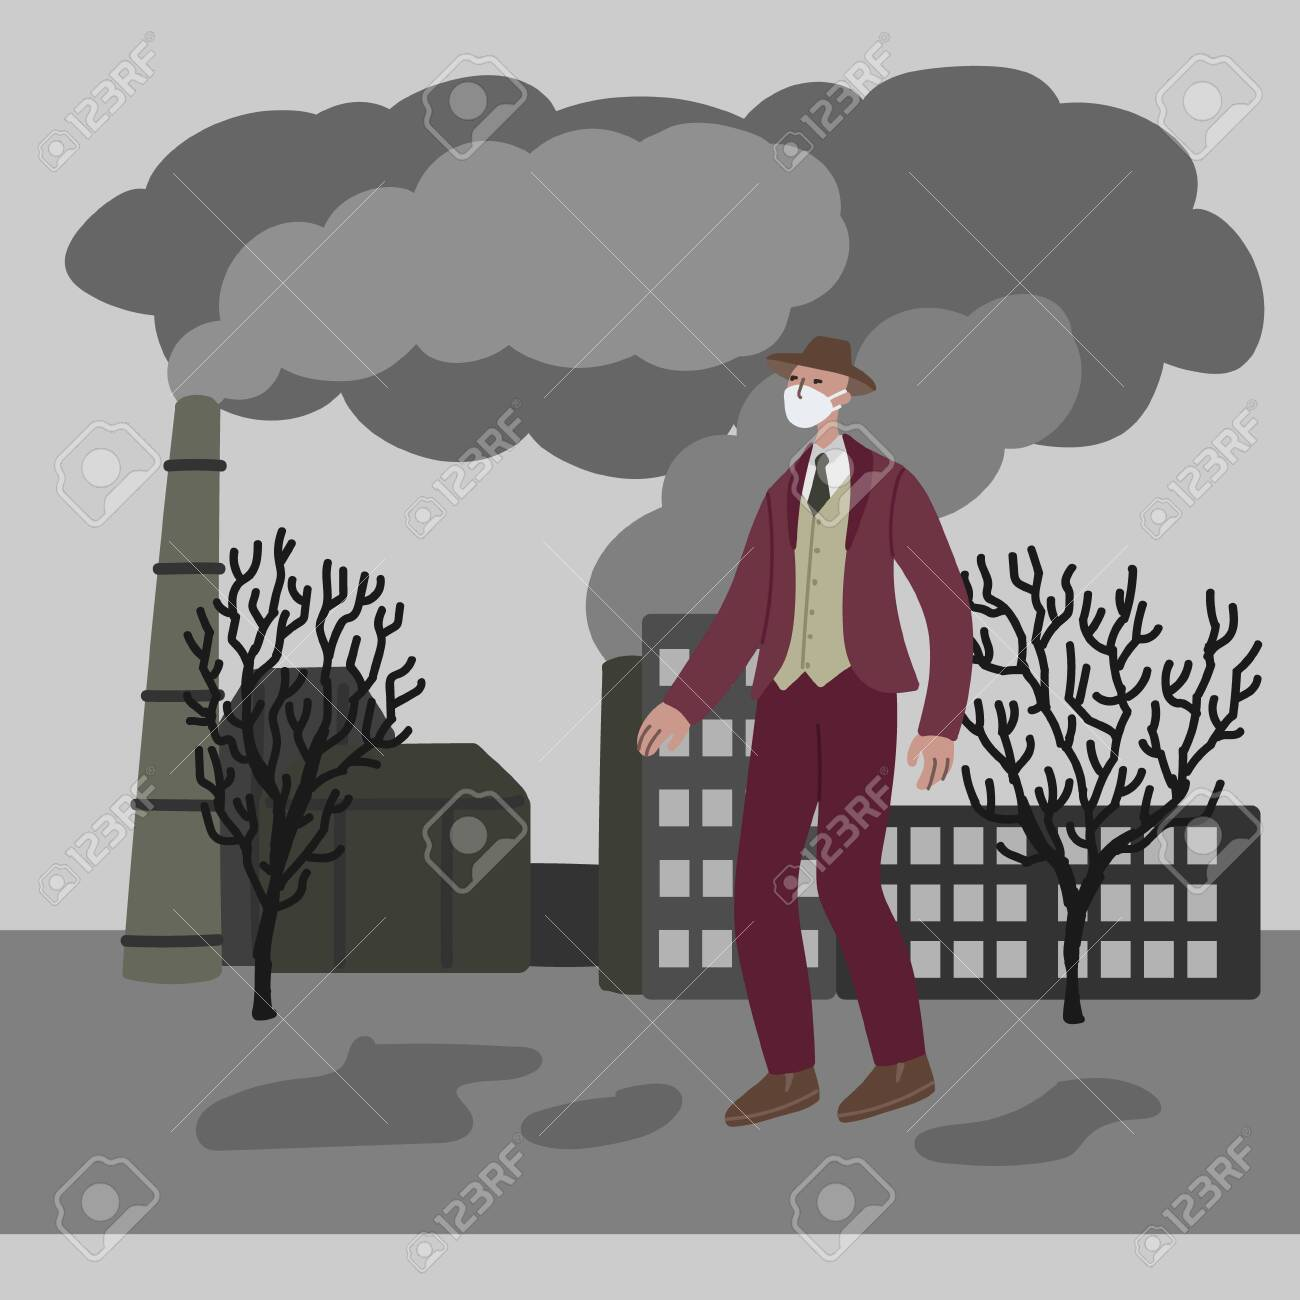 Vector hand drawn illustration with men in mask. Man wearing mask against smog. City landscape chimneys emit smoke harmful emissions polluted air poor ecology in the city. Air pollution concept - 133322071